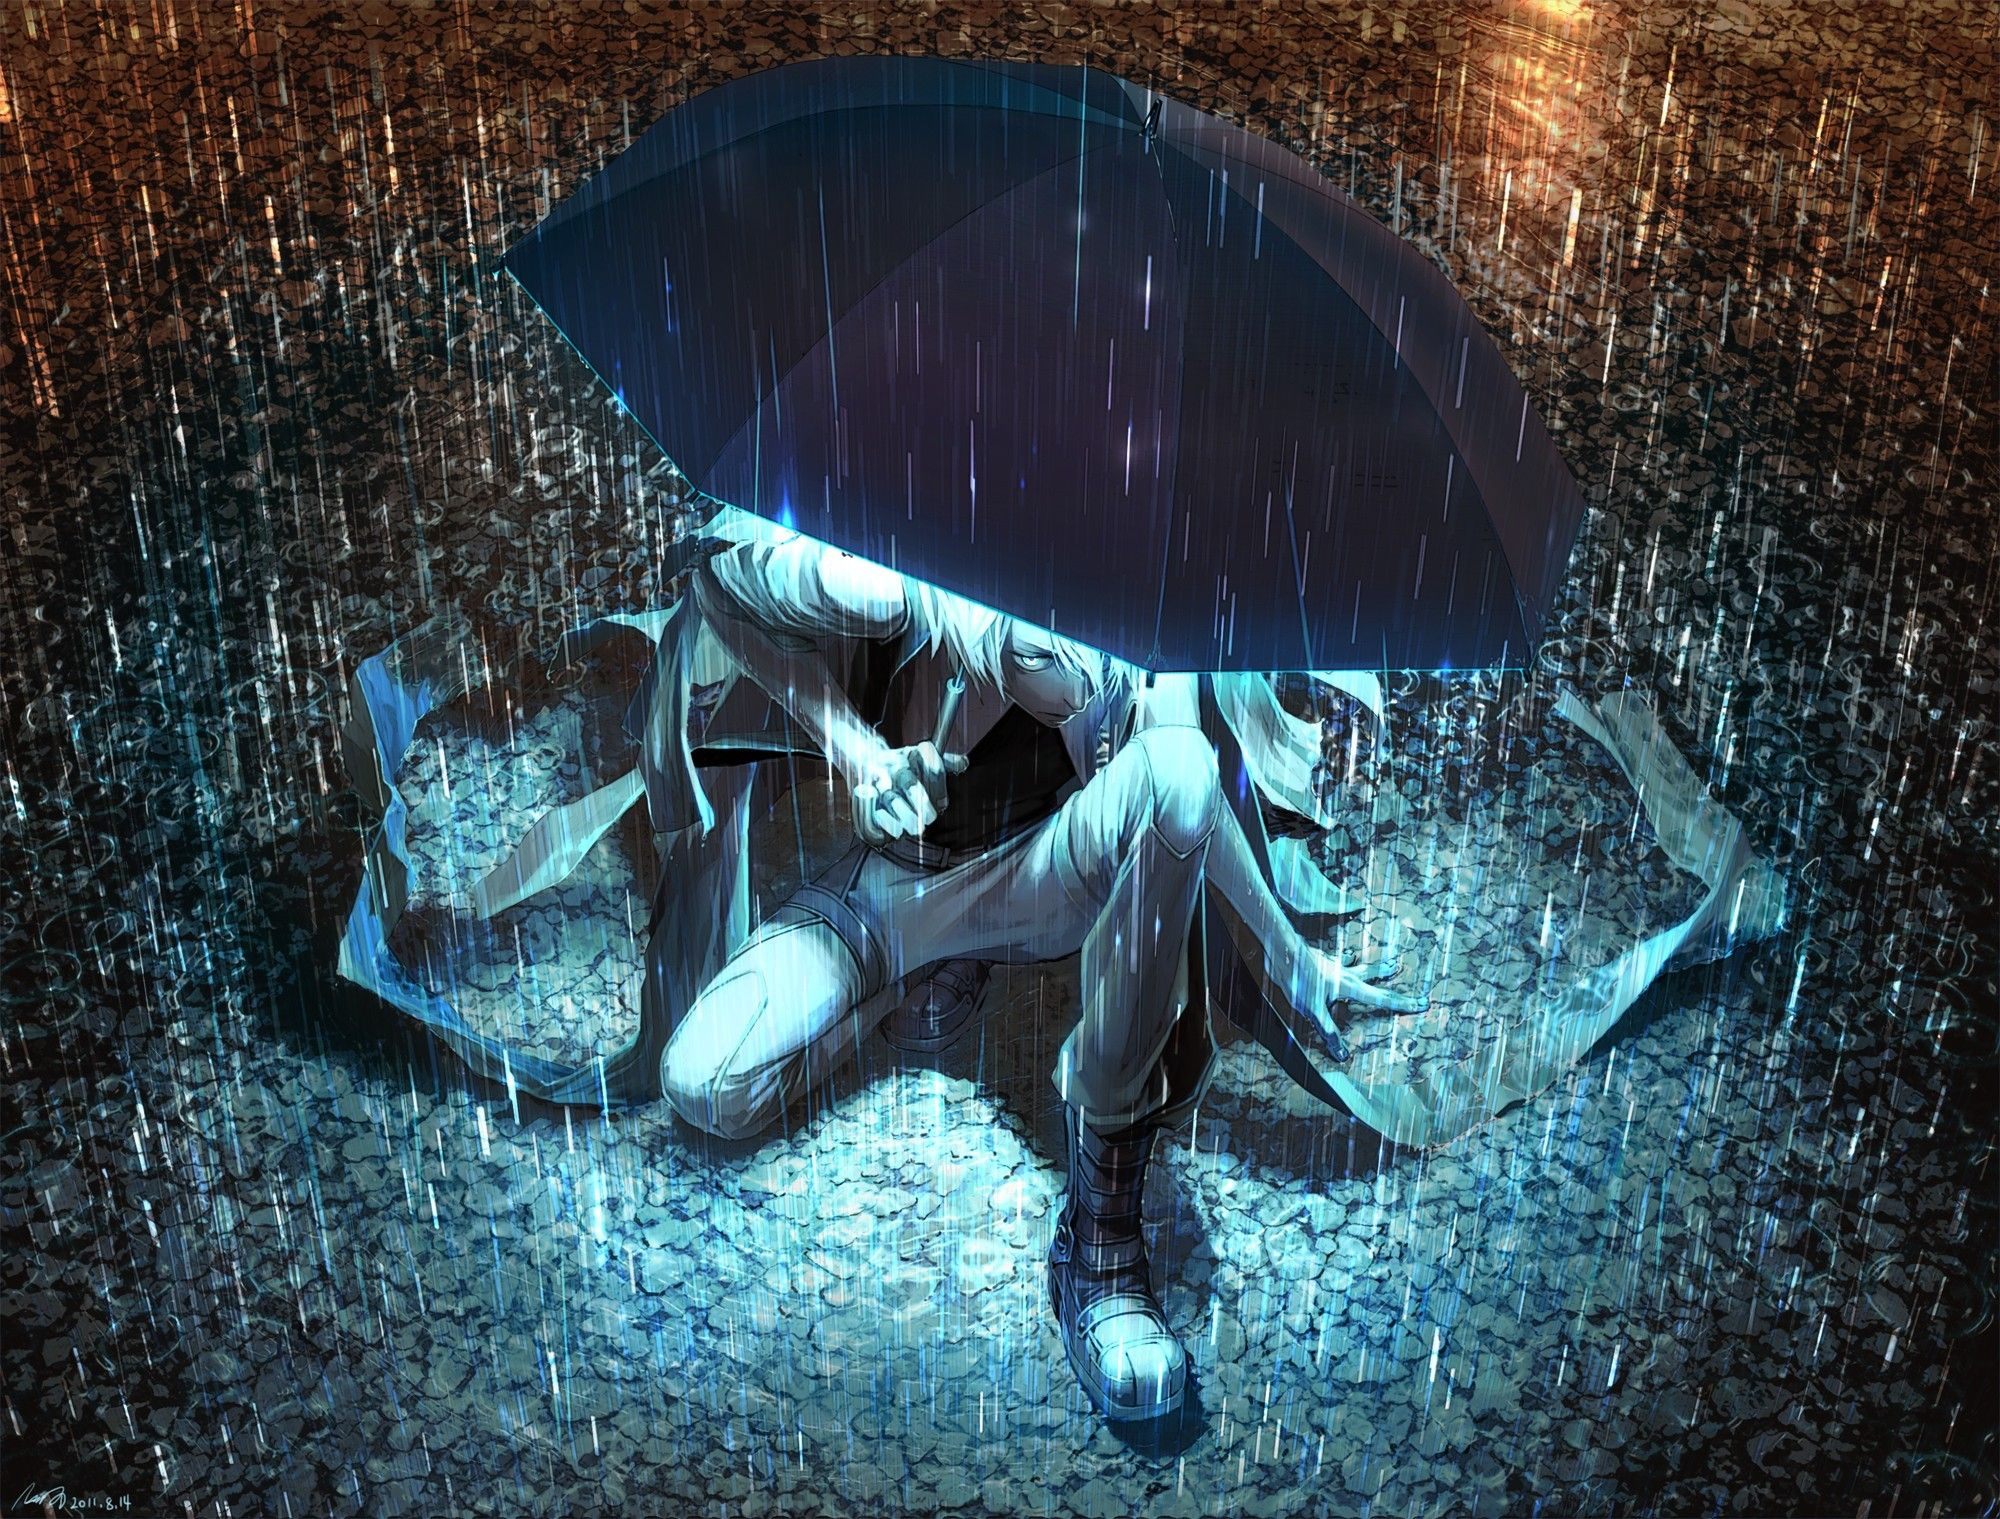 Umbrellas Anime Rain Umbrellas Anime Rain Is An Hd Desktop Wallpaper Posted In Our Free Image C Anime Wallpaper Anime Wallpaper 1920x1080 Hd Anime Wallpapers